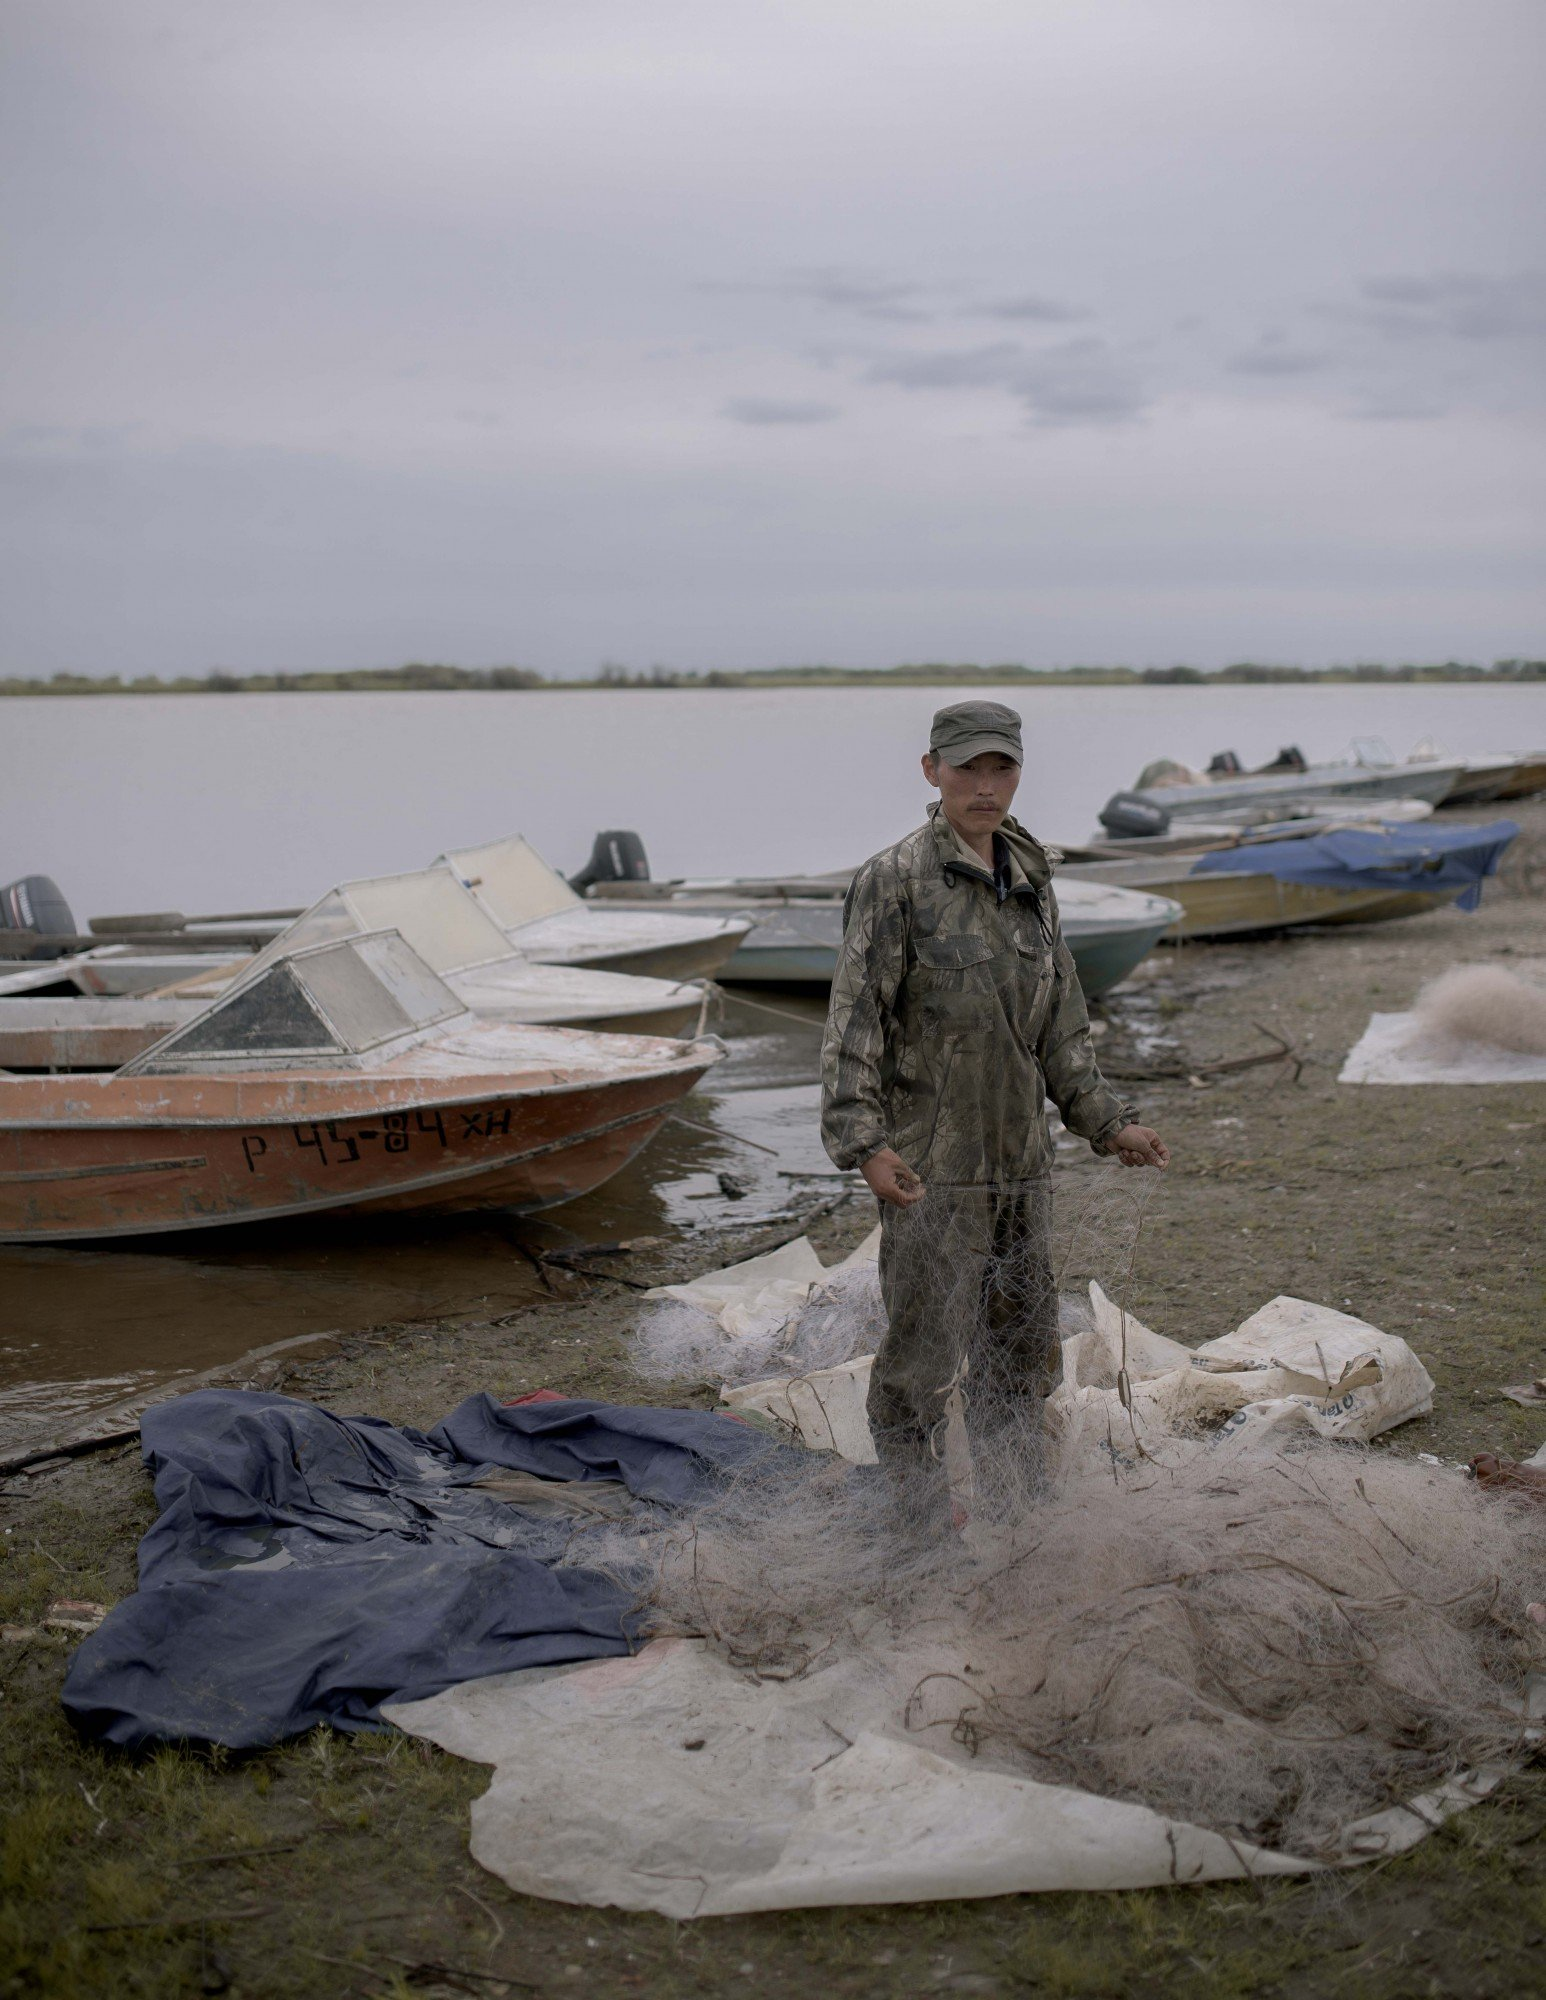 Locals are worried that fish have become scarce over the last few years. Many are outraged that this is happening as a result of exploitative fishing methods used by larger enterprises on the Amur River